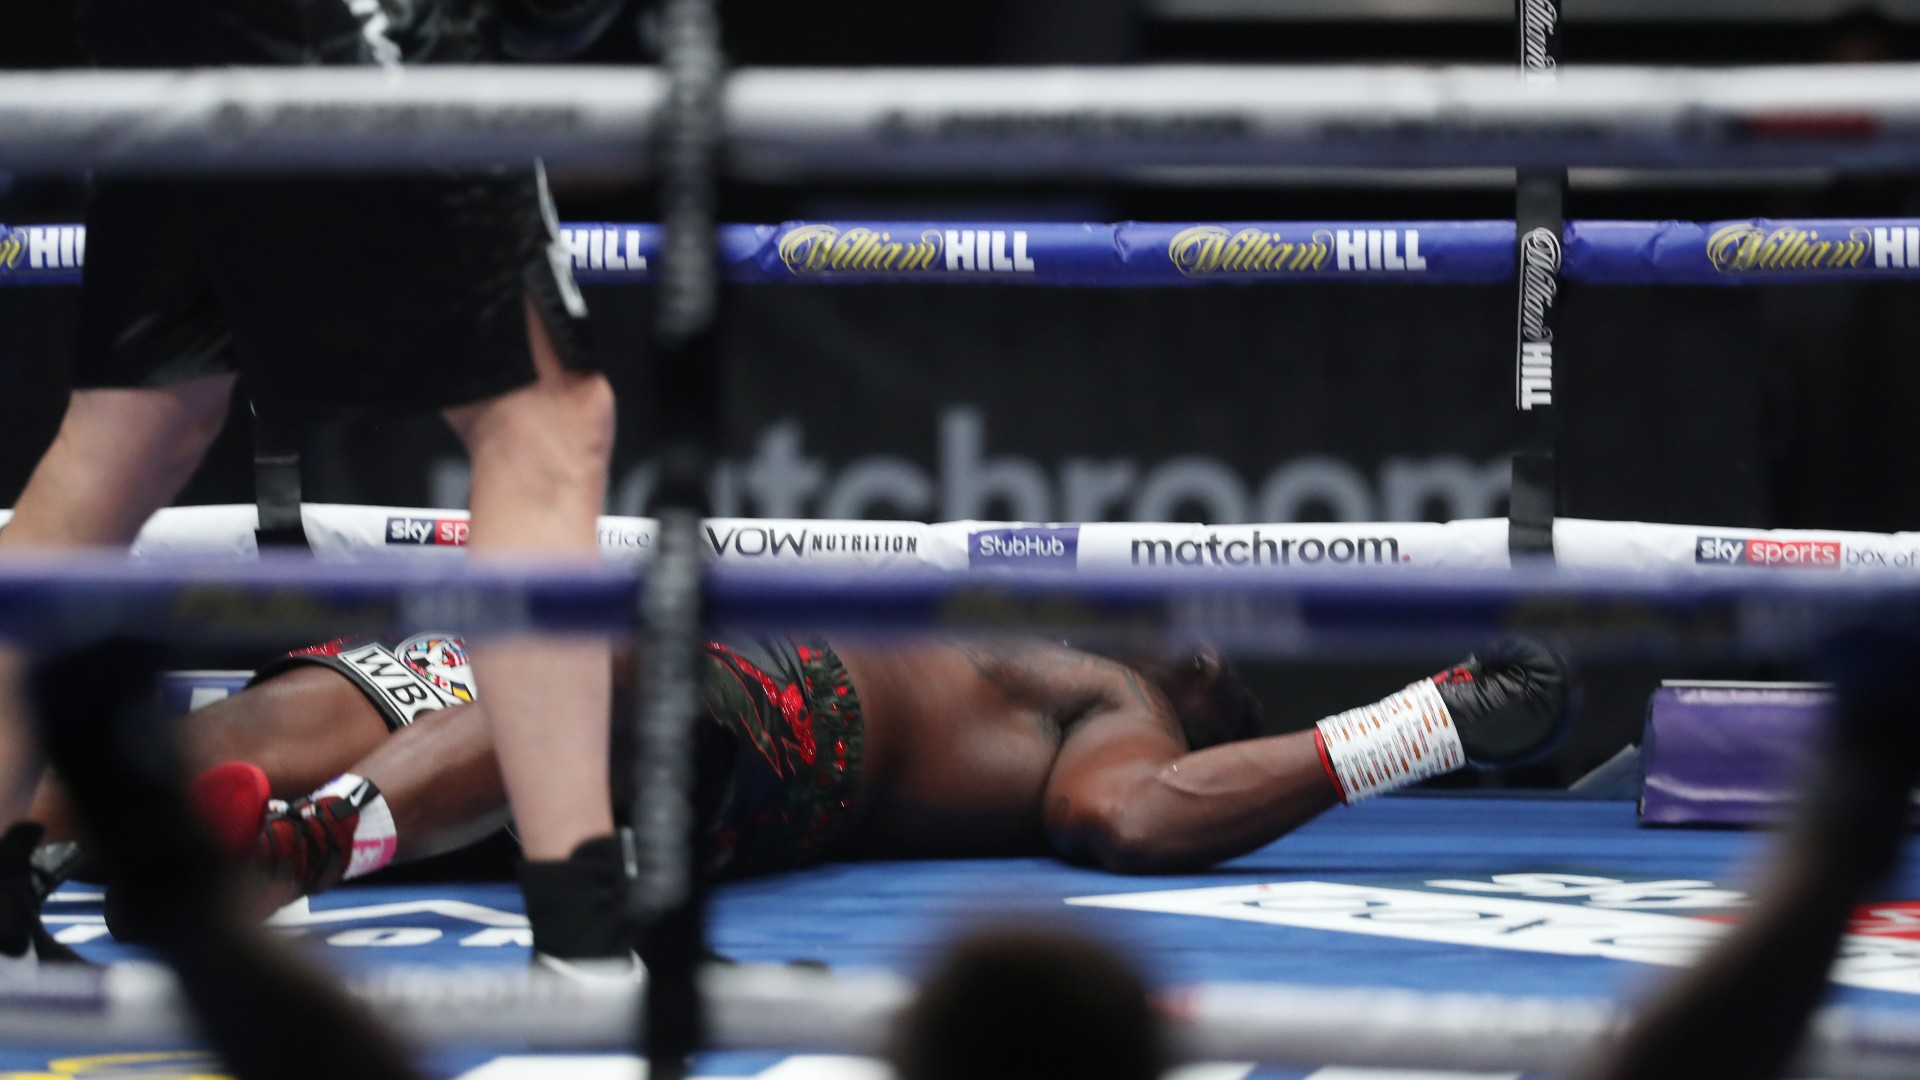 Dillian Whyte Brutally Knocked Out By Povetkin